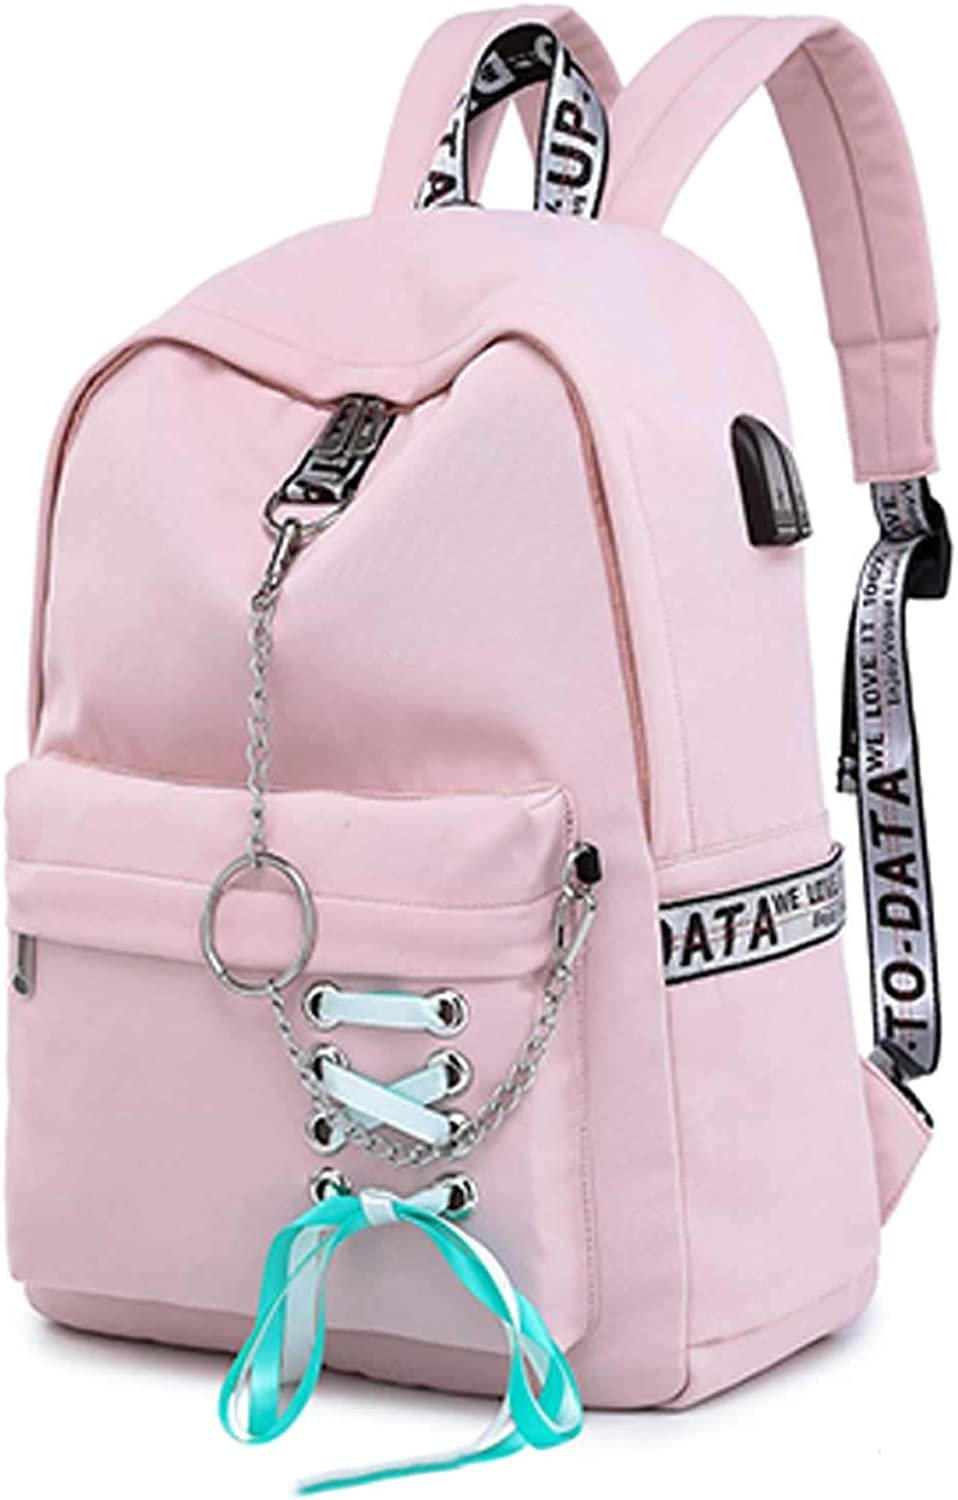 Teen Girl School Backpack USB Charging Port 16 Inch Laptop Bag Travel Daypack